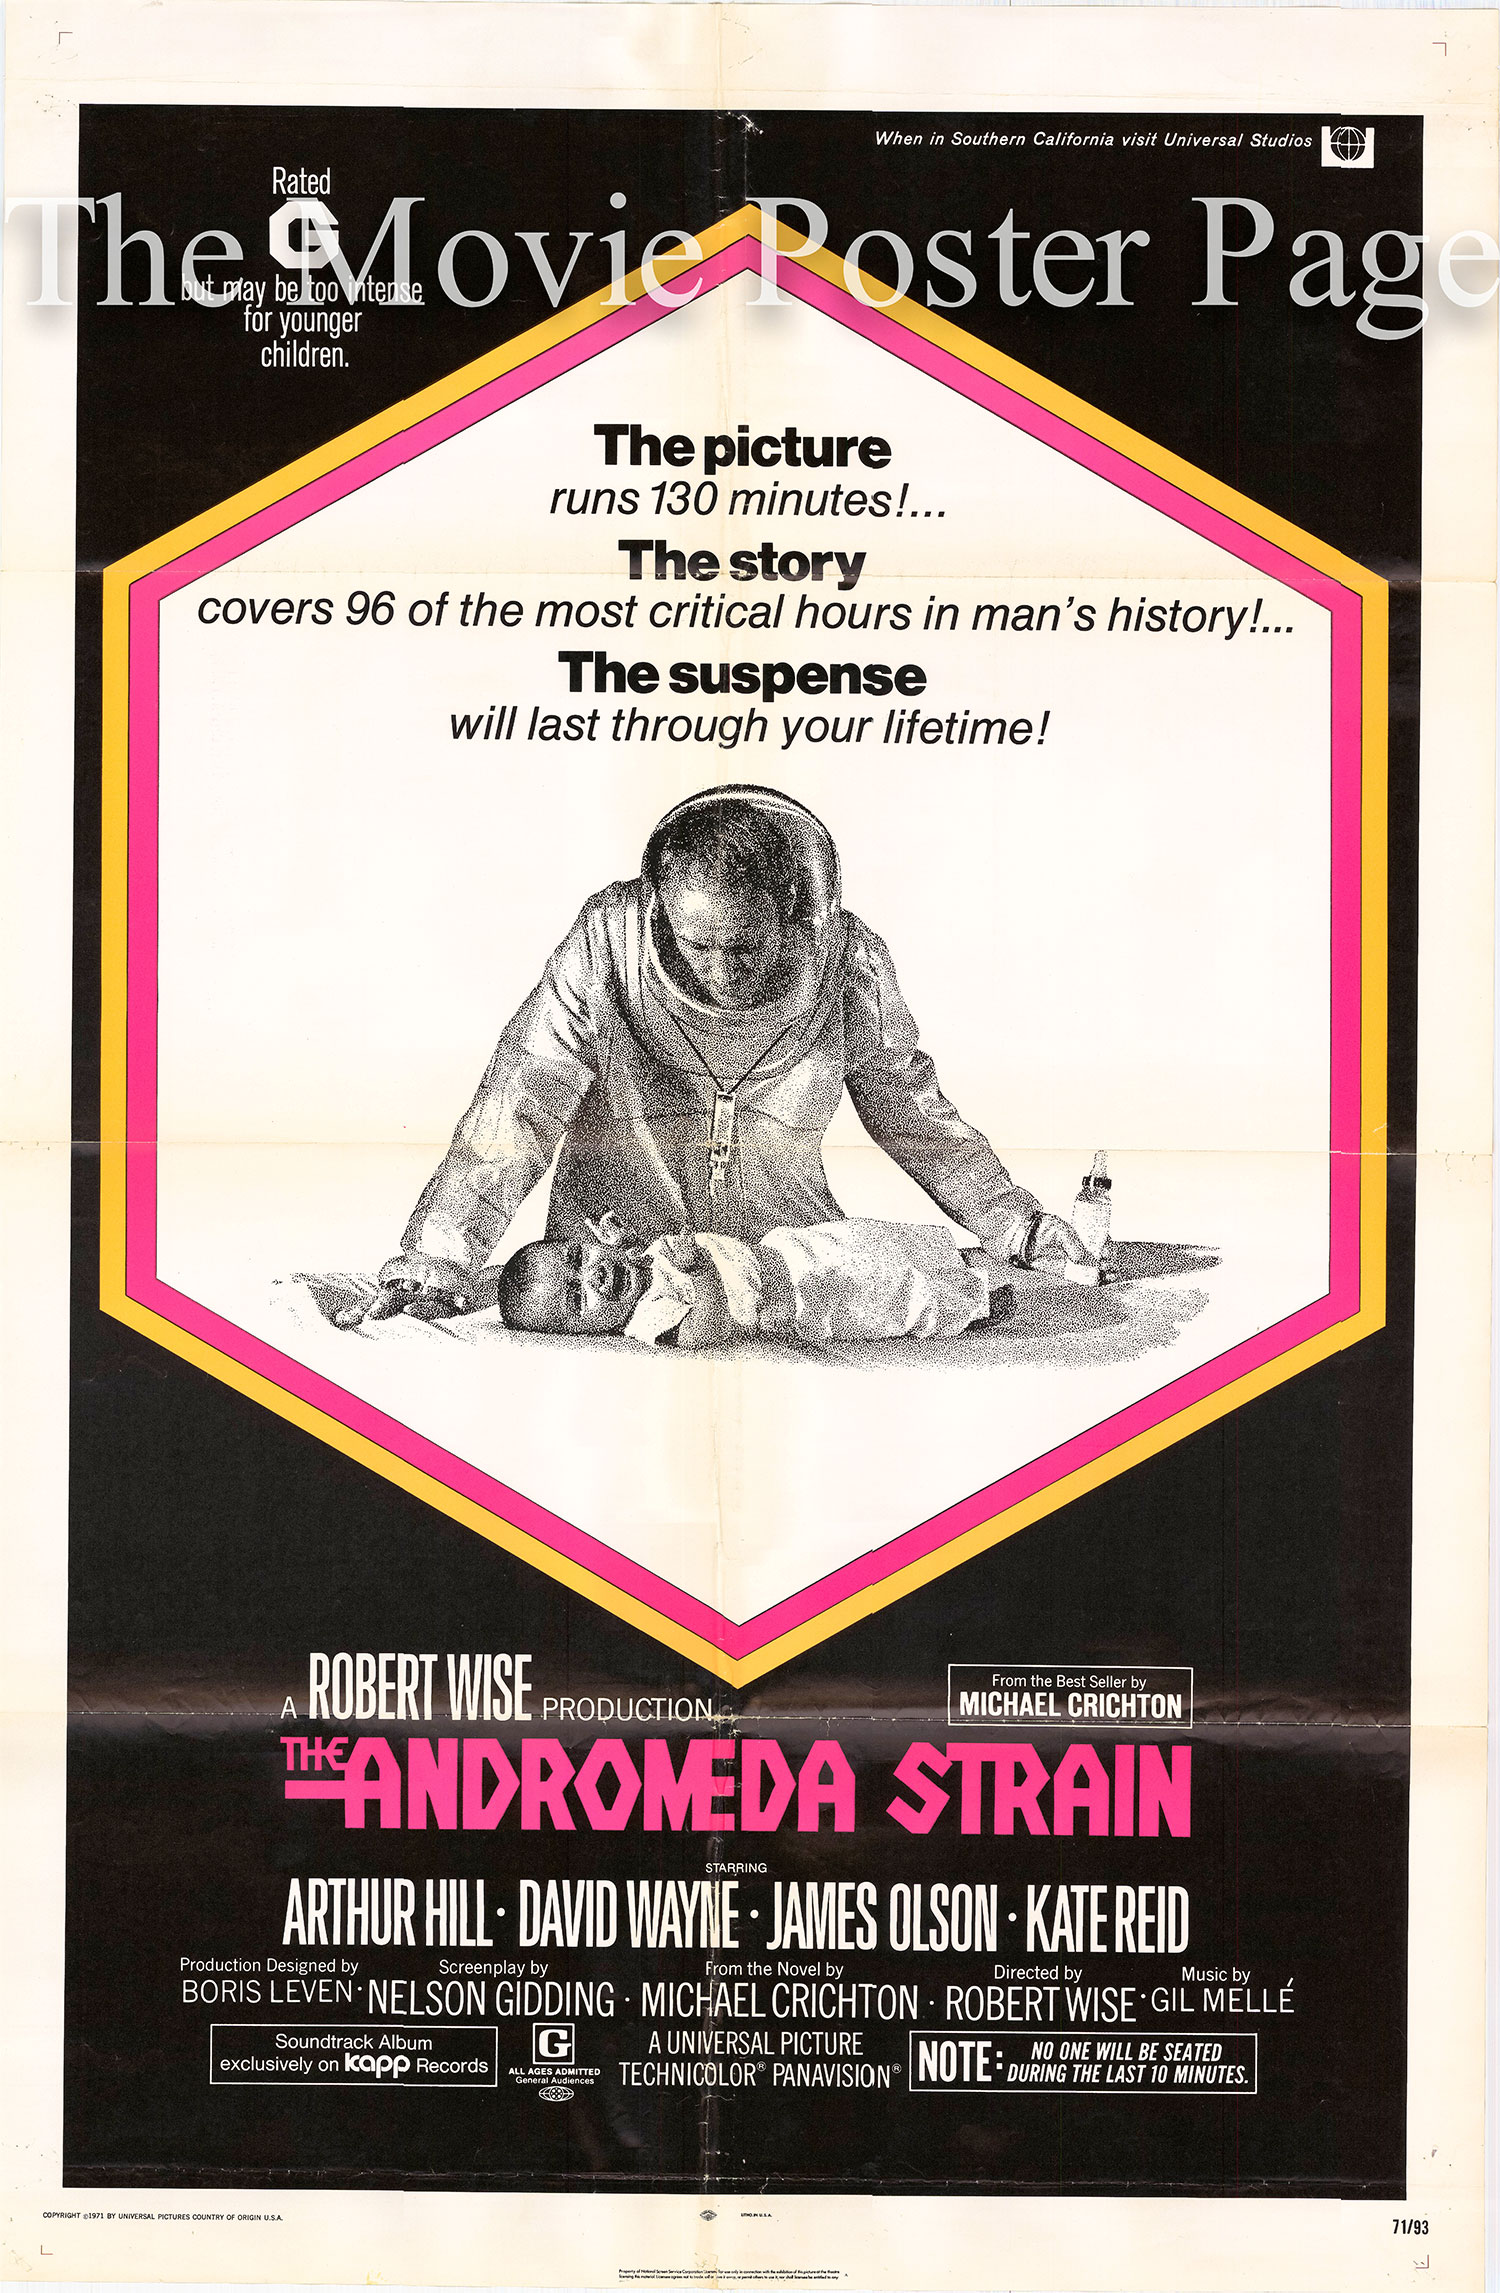 Pictured is a US one-sheet for the 1971 Robert Wise film The Andromeda Strain starring James Olson.